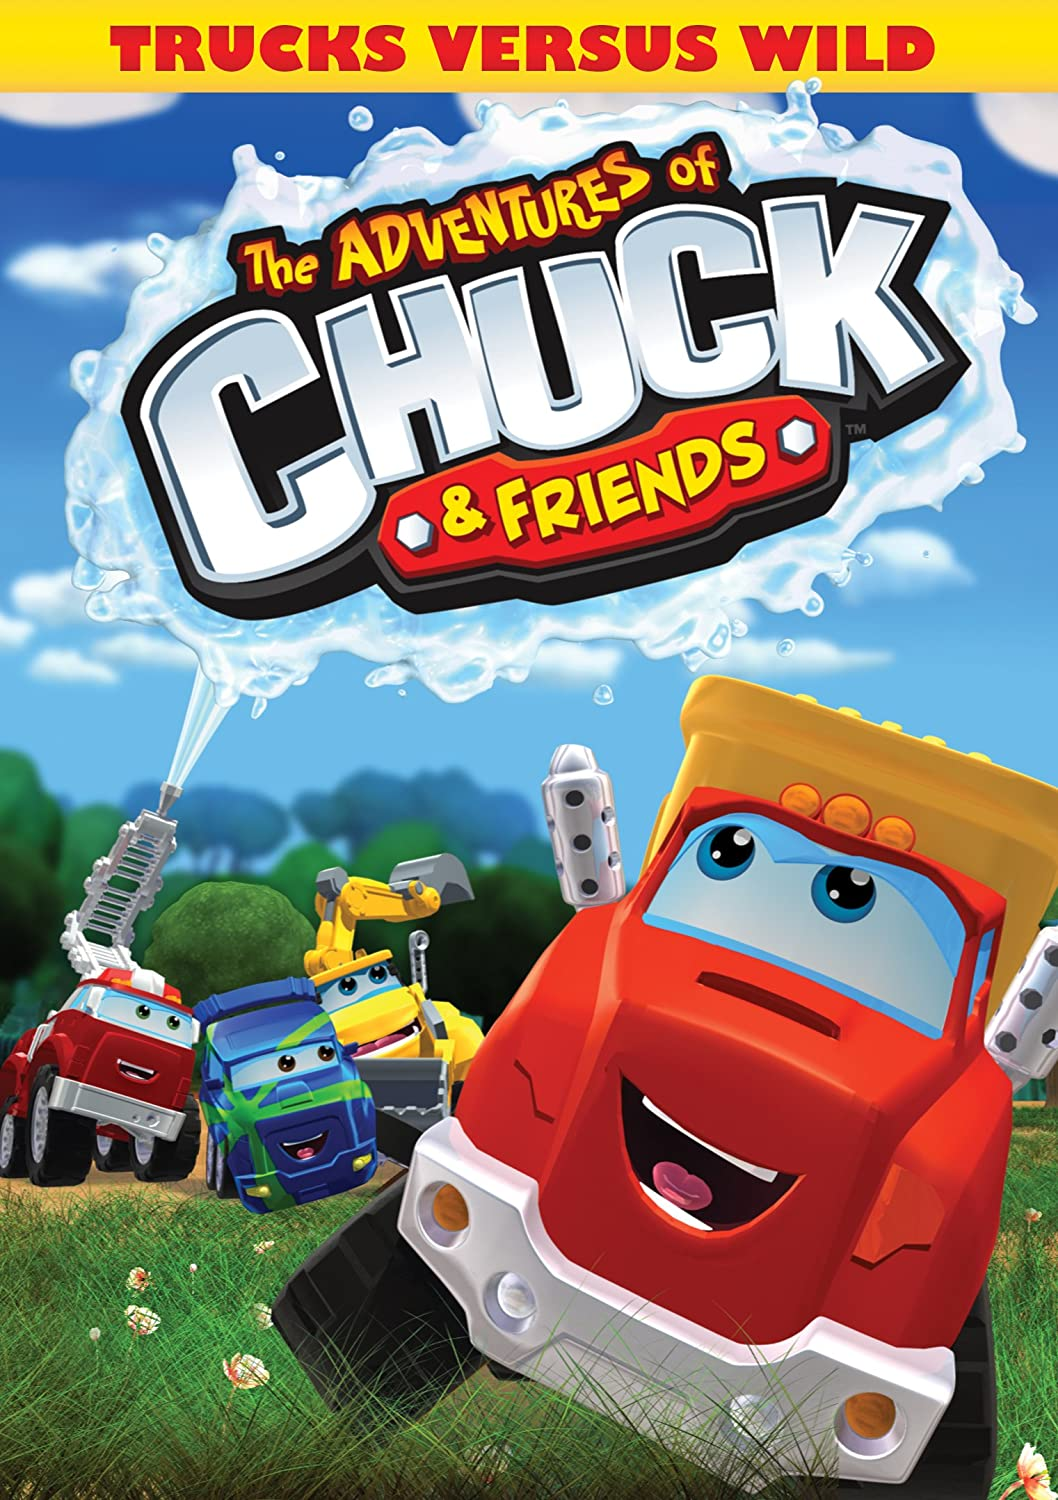 http://www.amazon.com/The-Adventures-Chuck-And-Friends/dp/B00FM4S89Y/